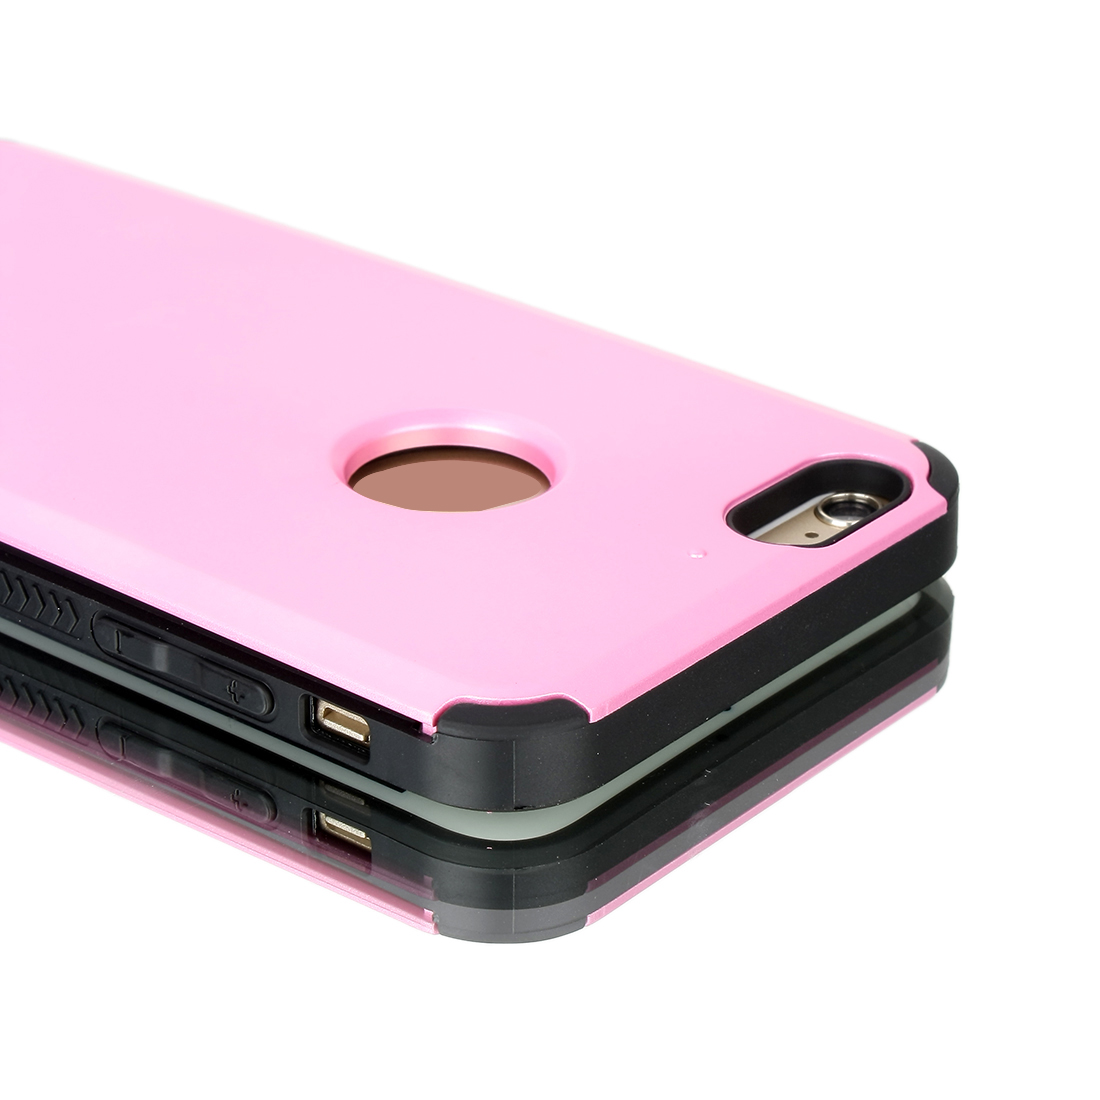 Card Pocket ShockProof Slim Hybrid Wallet Case Cover Pink for iPhone 6 Plus 5.5""